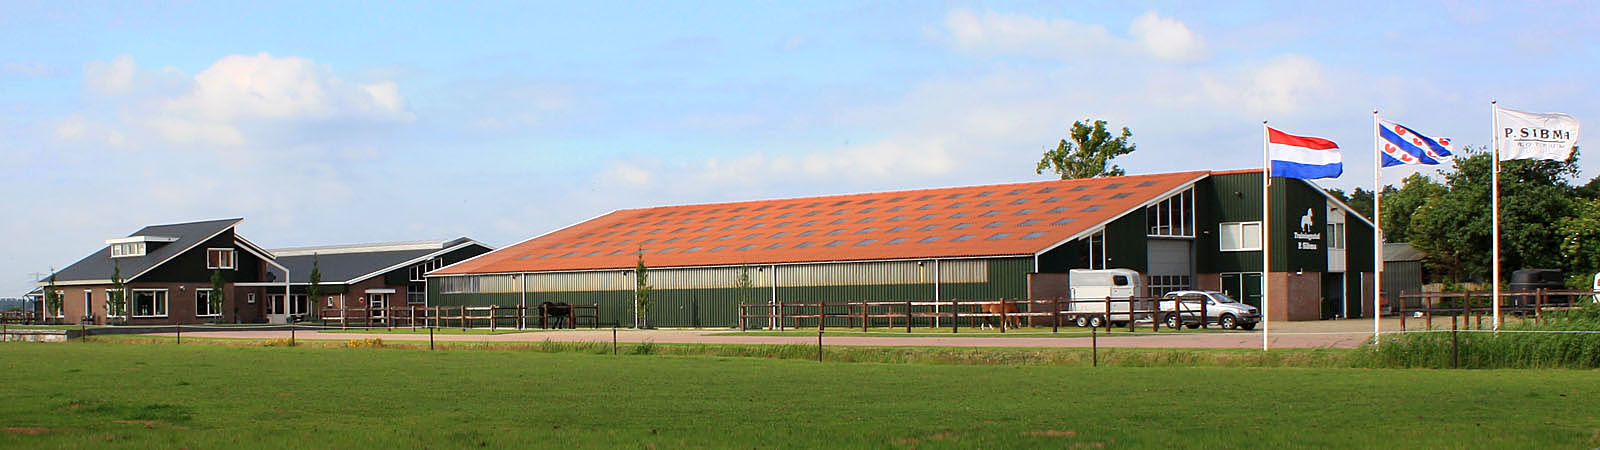 Verkoop friese paarden en manege stal sibma in rottum for Manege te koop